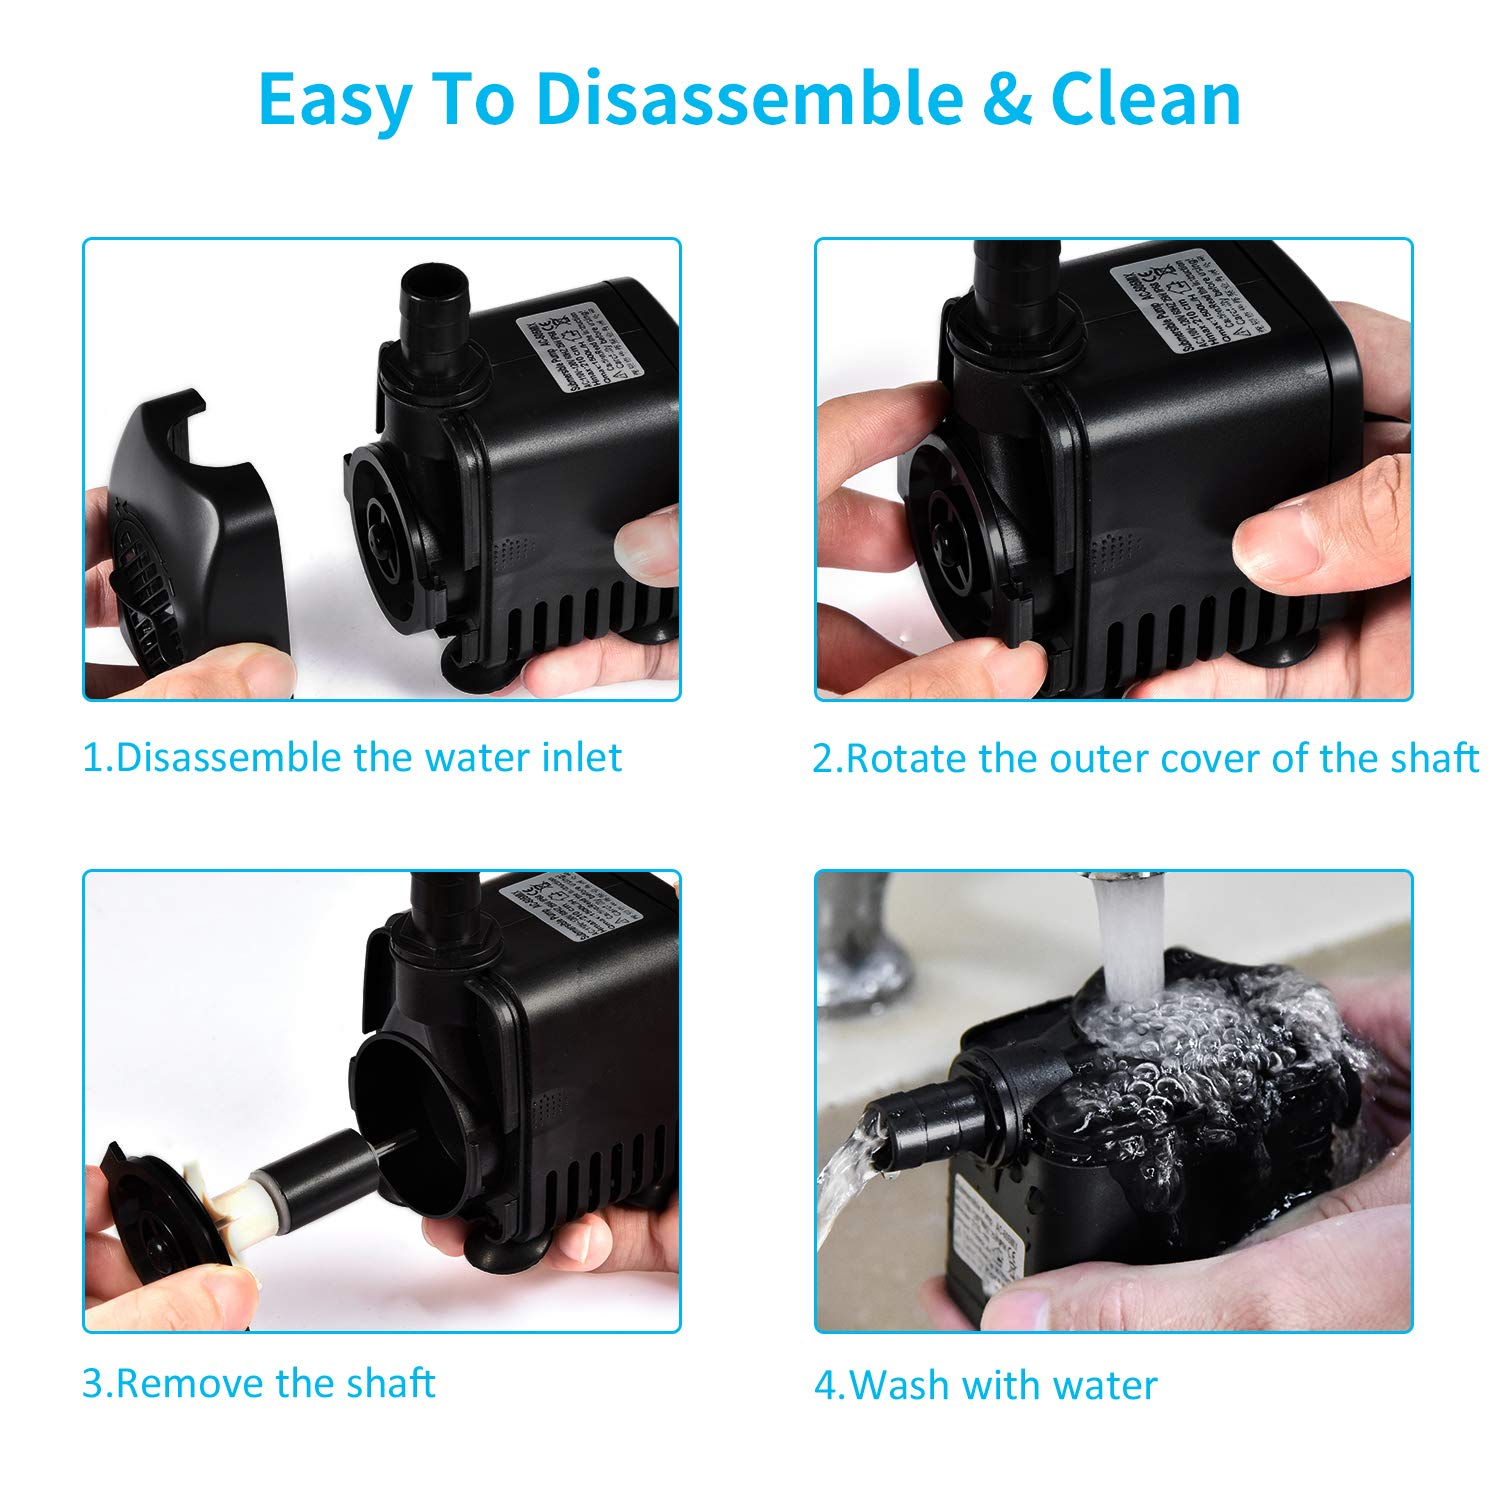 Fountain Pump 400GPH 25W Outdoor Fountain Water Pump kit Pond Pump Submersible Pump with 2 Nozzles Hose Tubing for Aquarium Fish Tank Fountain Pond Submersible Hydroponic and Backyard Garden